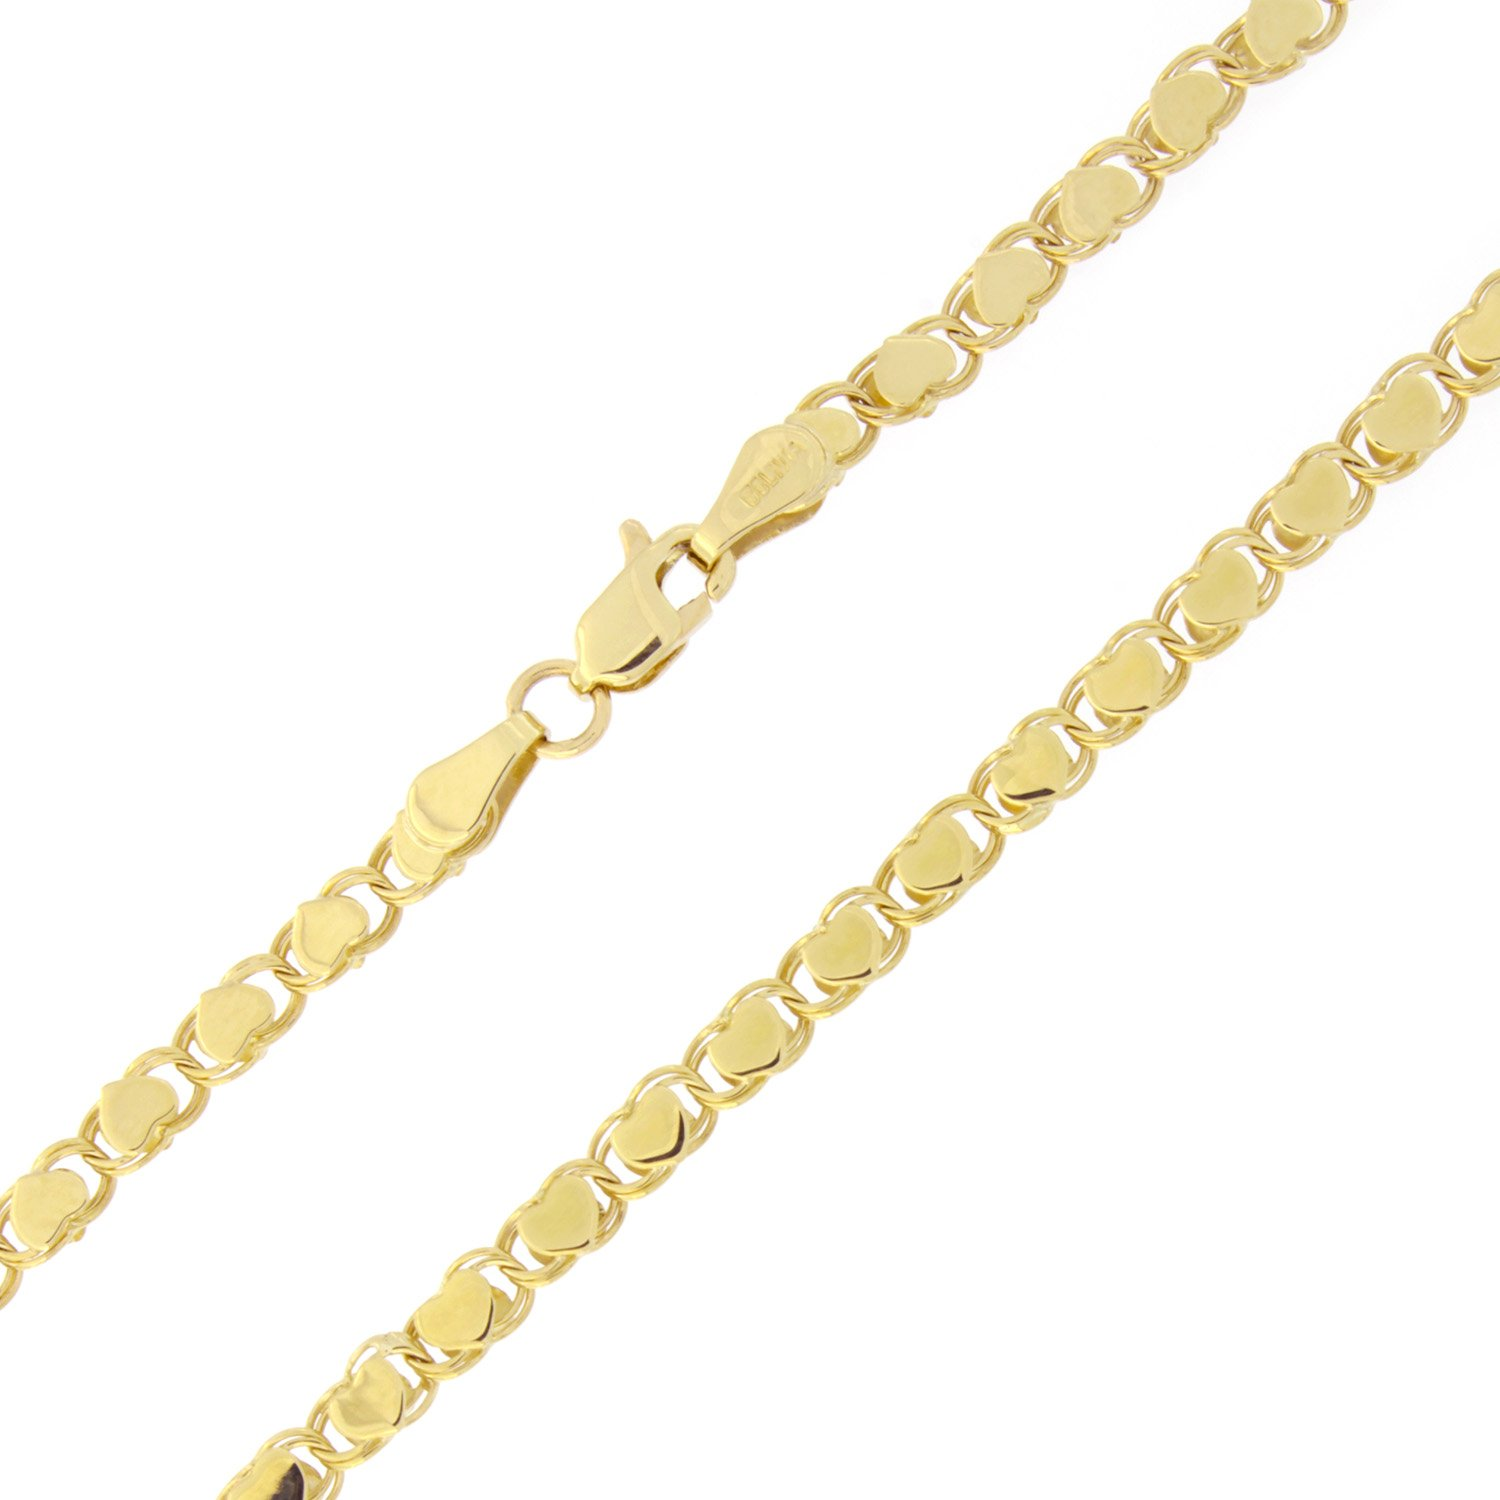 Beauniq 10k Yellow Gold 2.6 Millimeters Diamond-Cut Hearts Chain Anklet 10 Inches